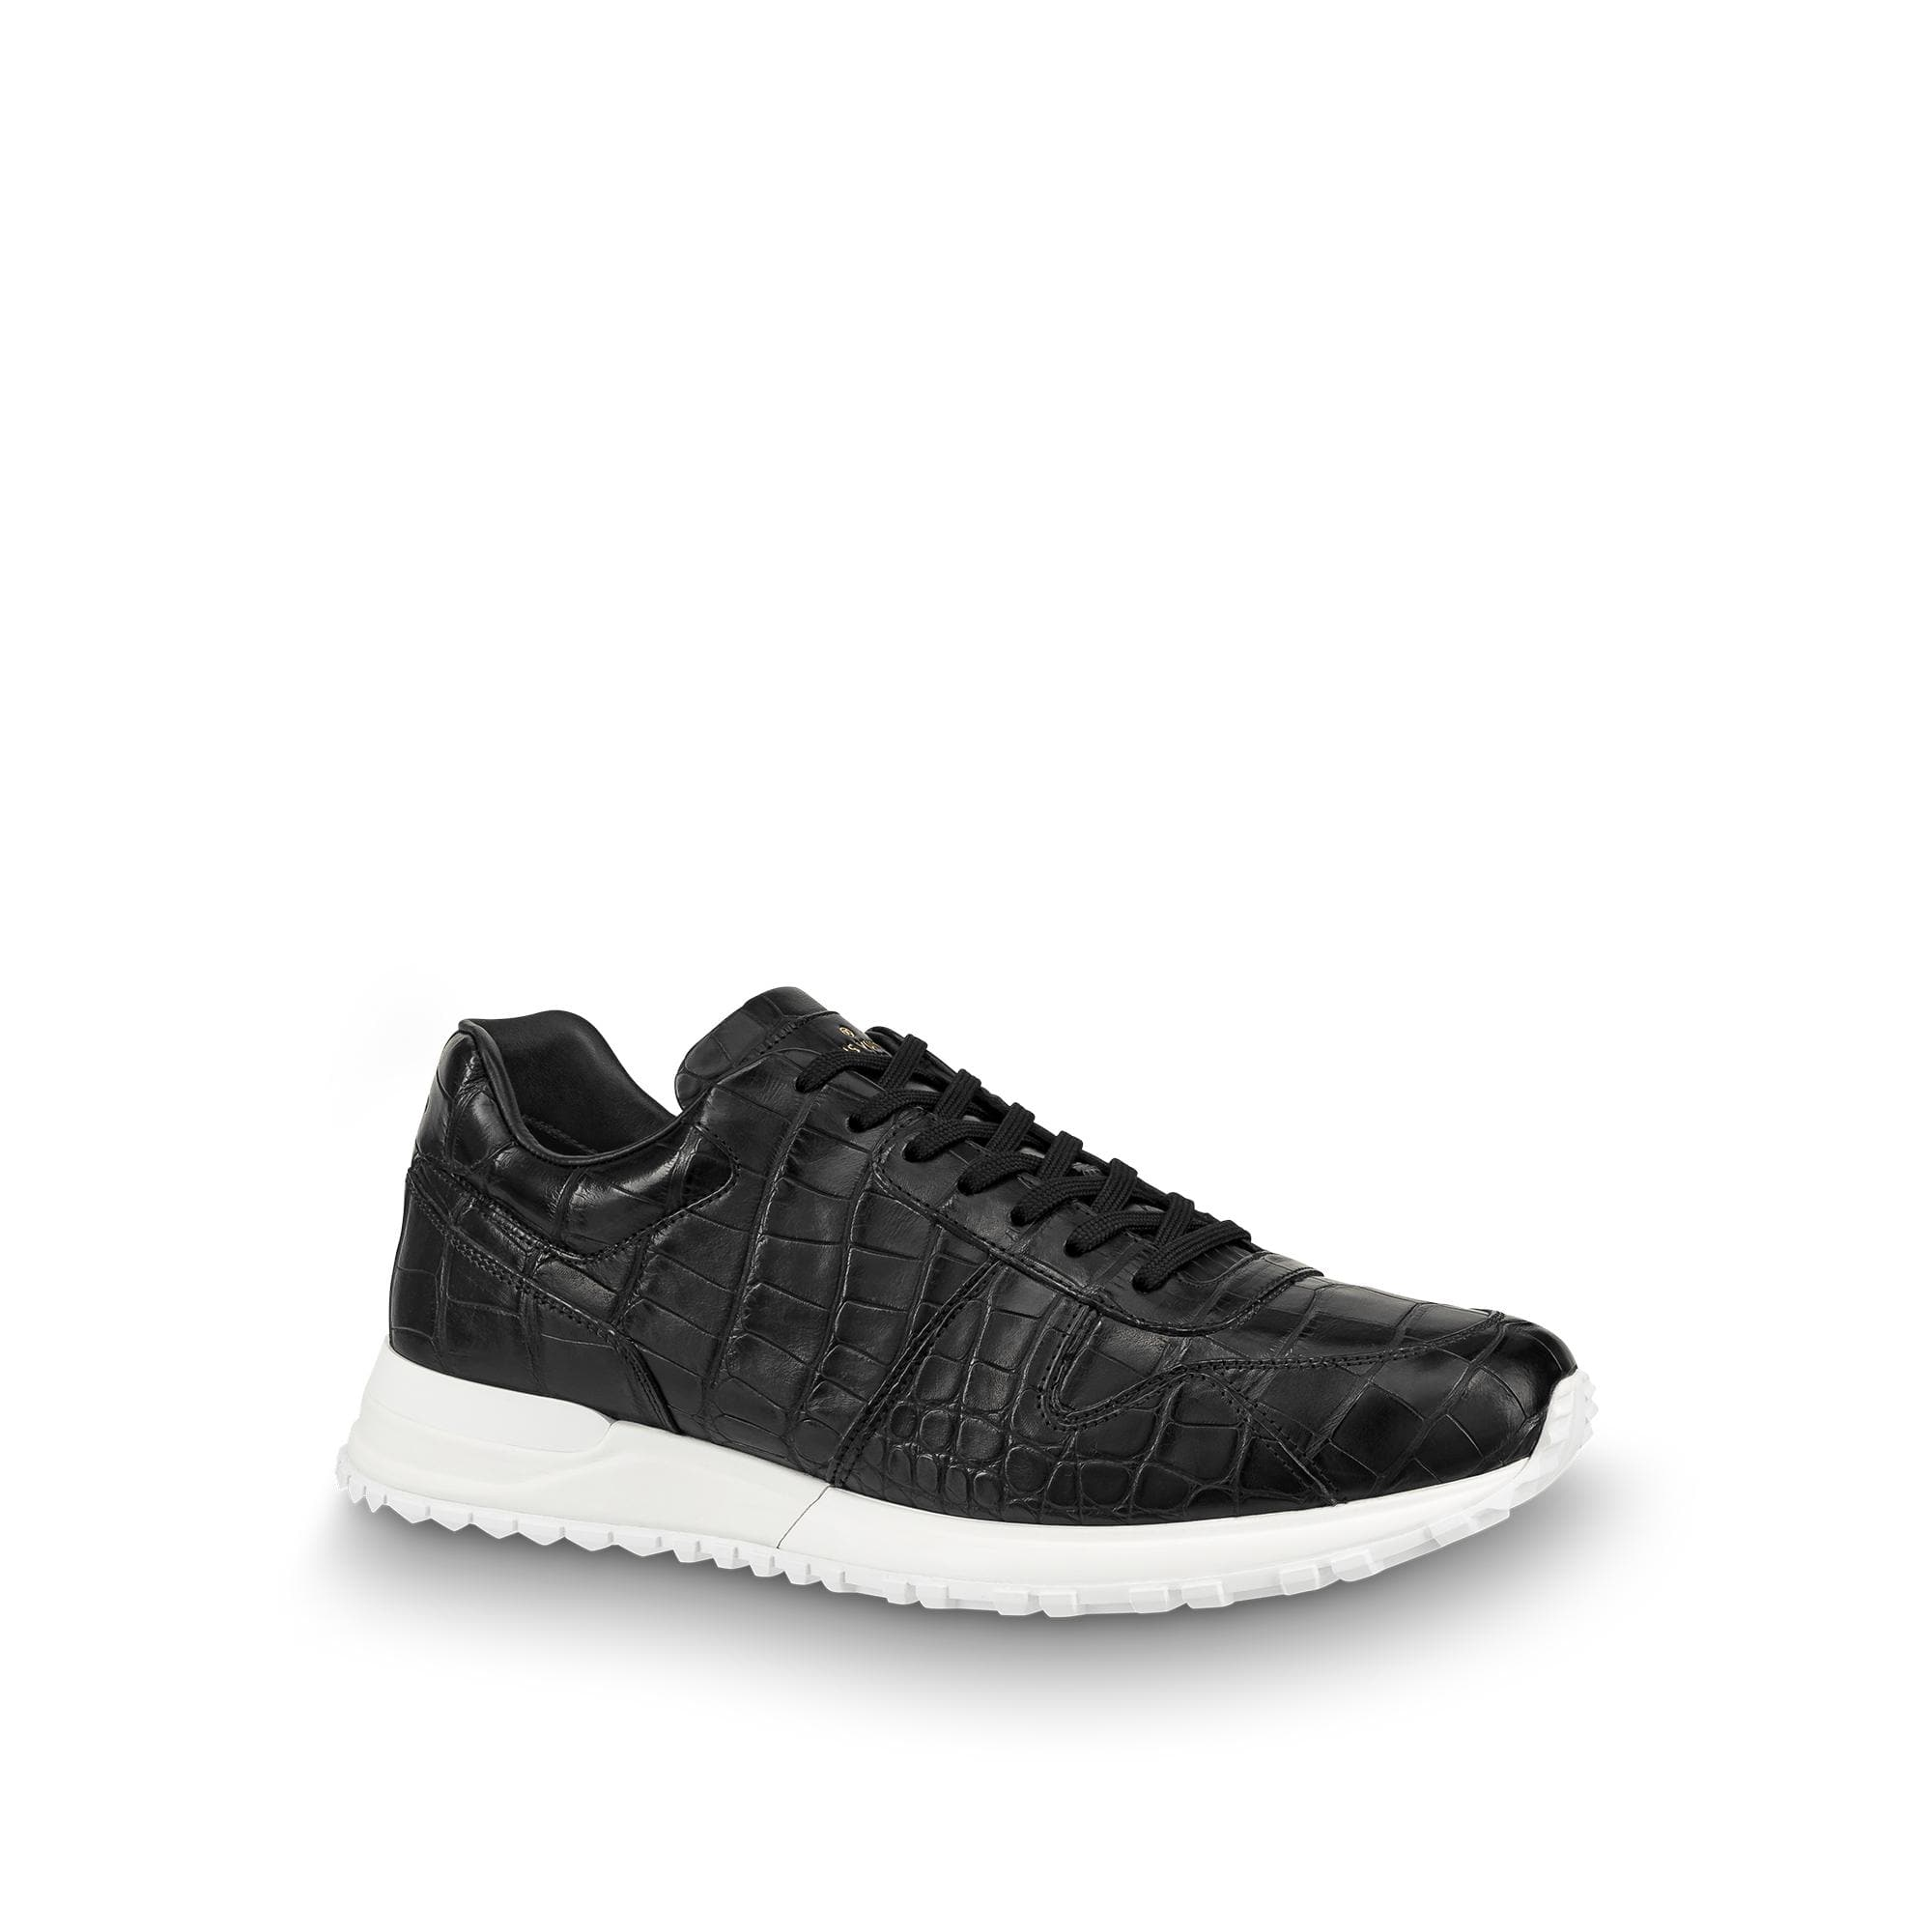 유럽직배송 루이비통 LOUIS VUITTON Run Away Trainer 1A4U4S